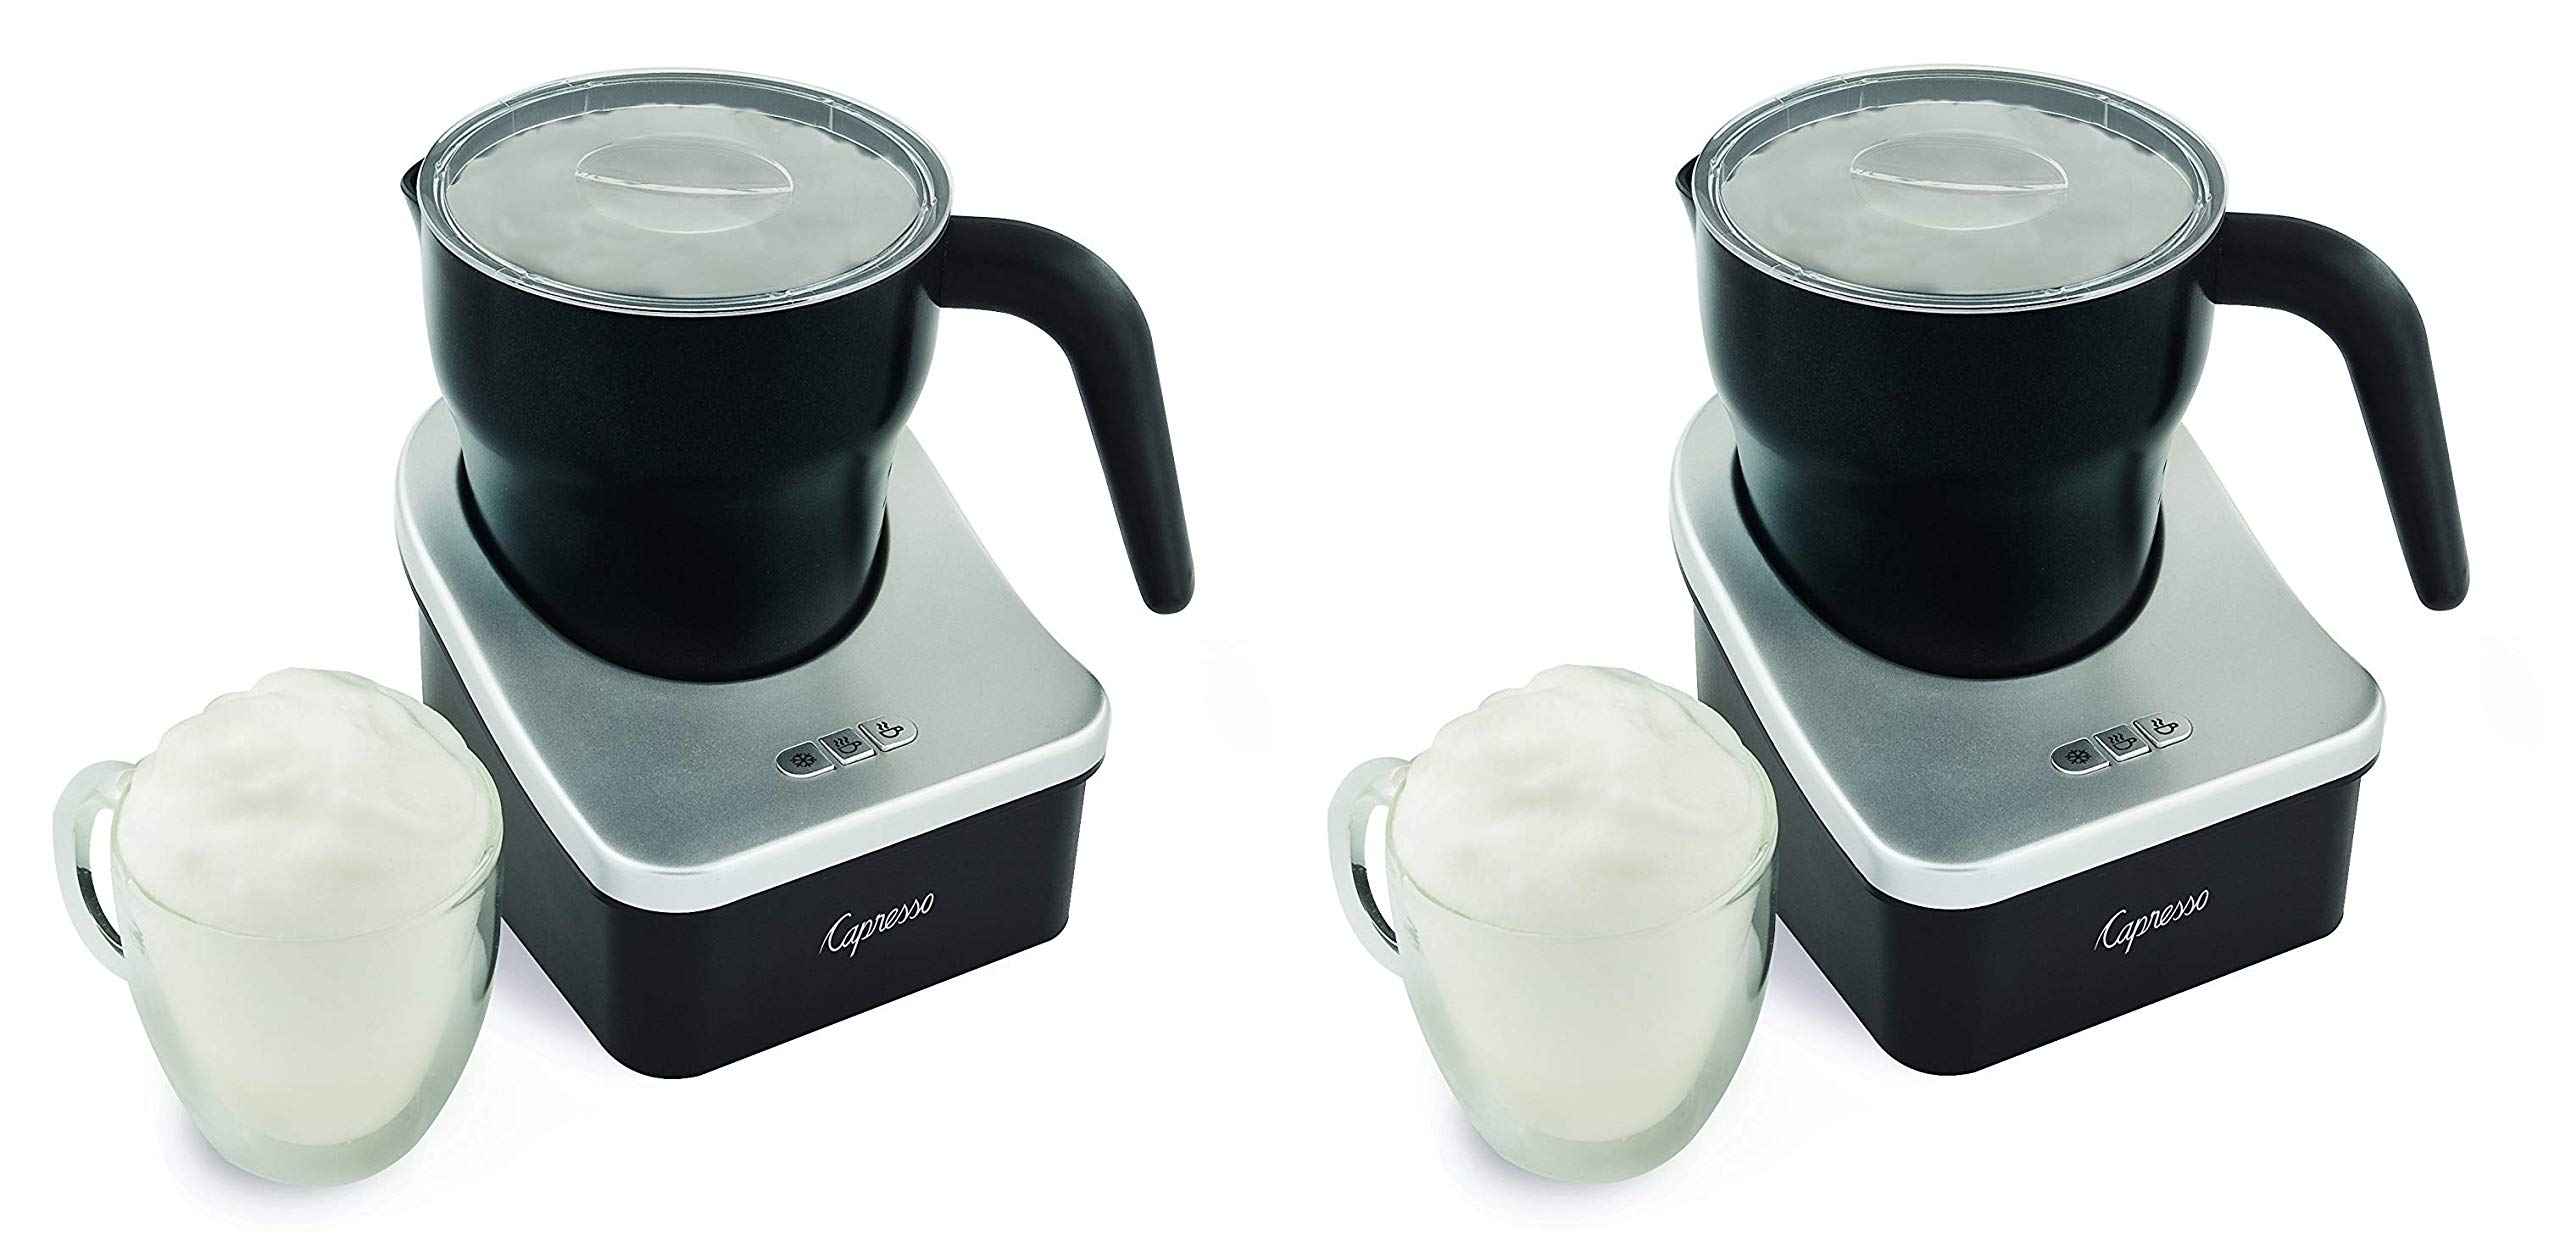 Capresso 202.04 frothPRO Automatic Milk Frother and Hot Chocolate Maker (Pack of 2)